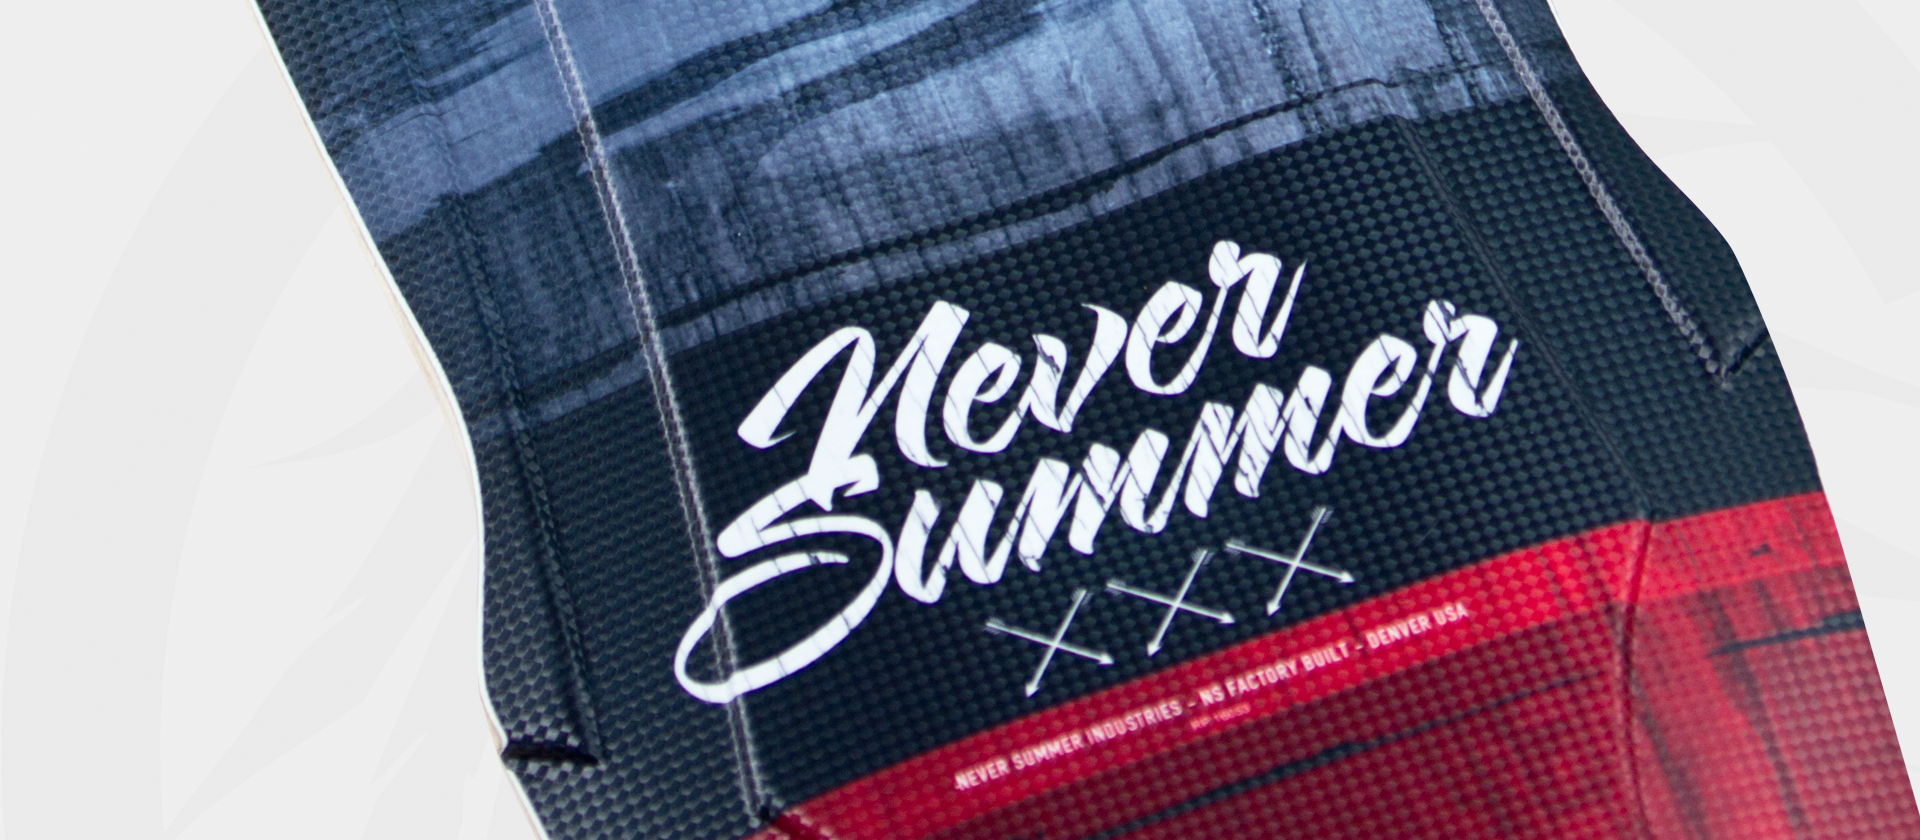 34875d63716d At 4.6lb, the Never Summer Reaper is an awesome deck. Check it out at the  link!